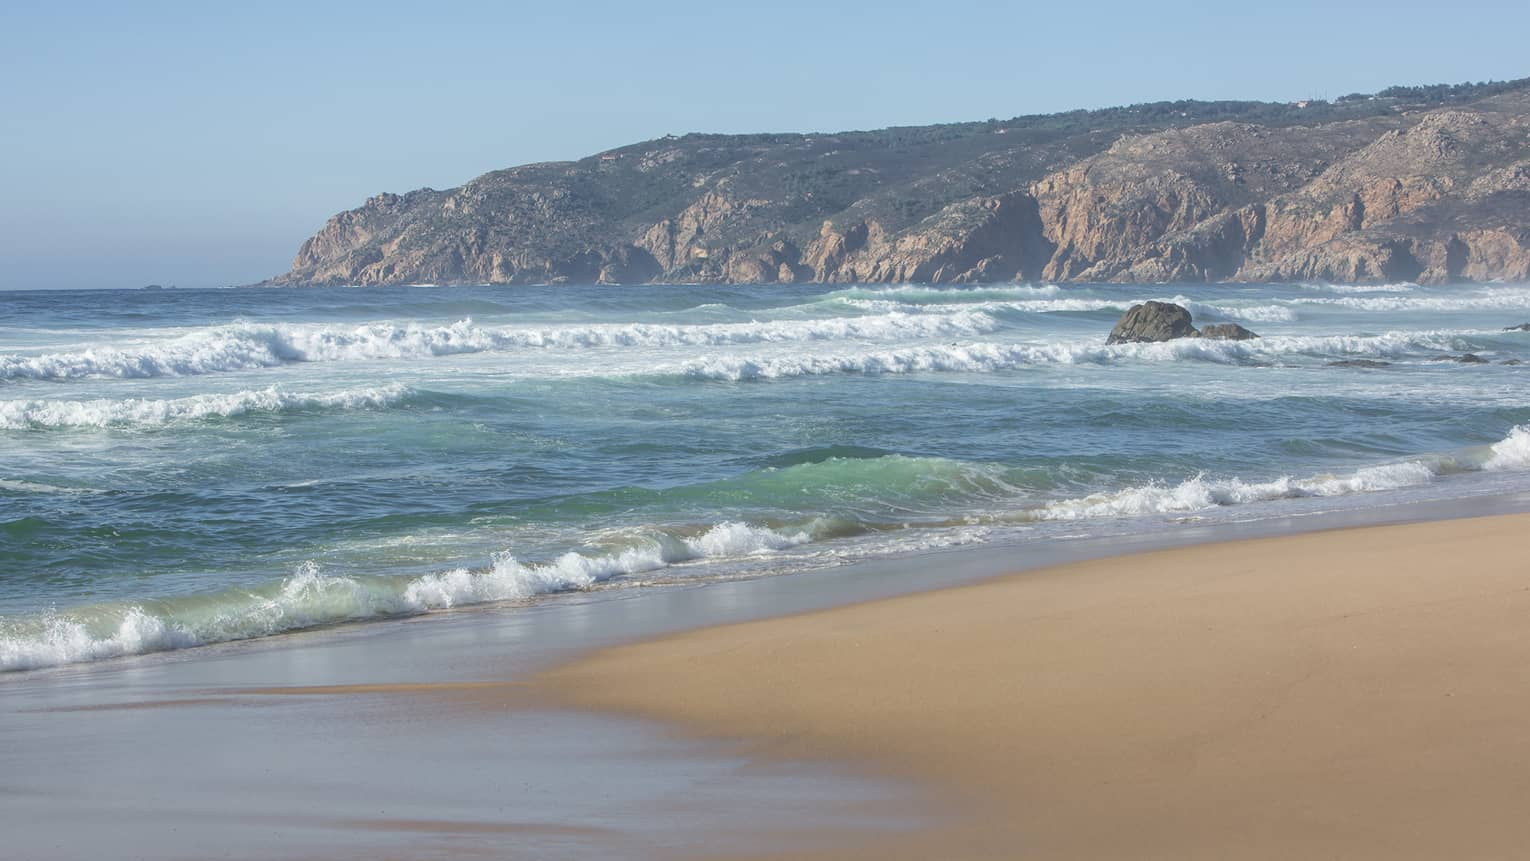 Blue waves roll onto shore on serene Guincho Beach in Portugal